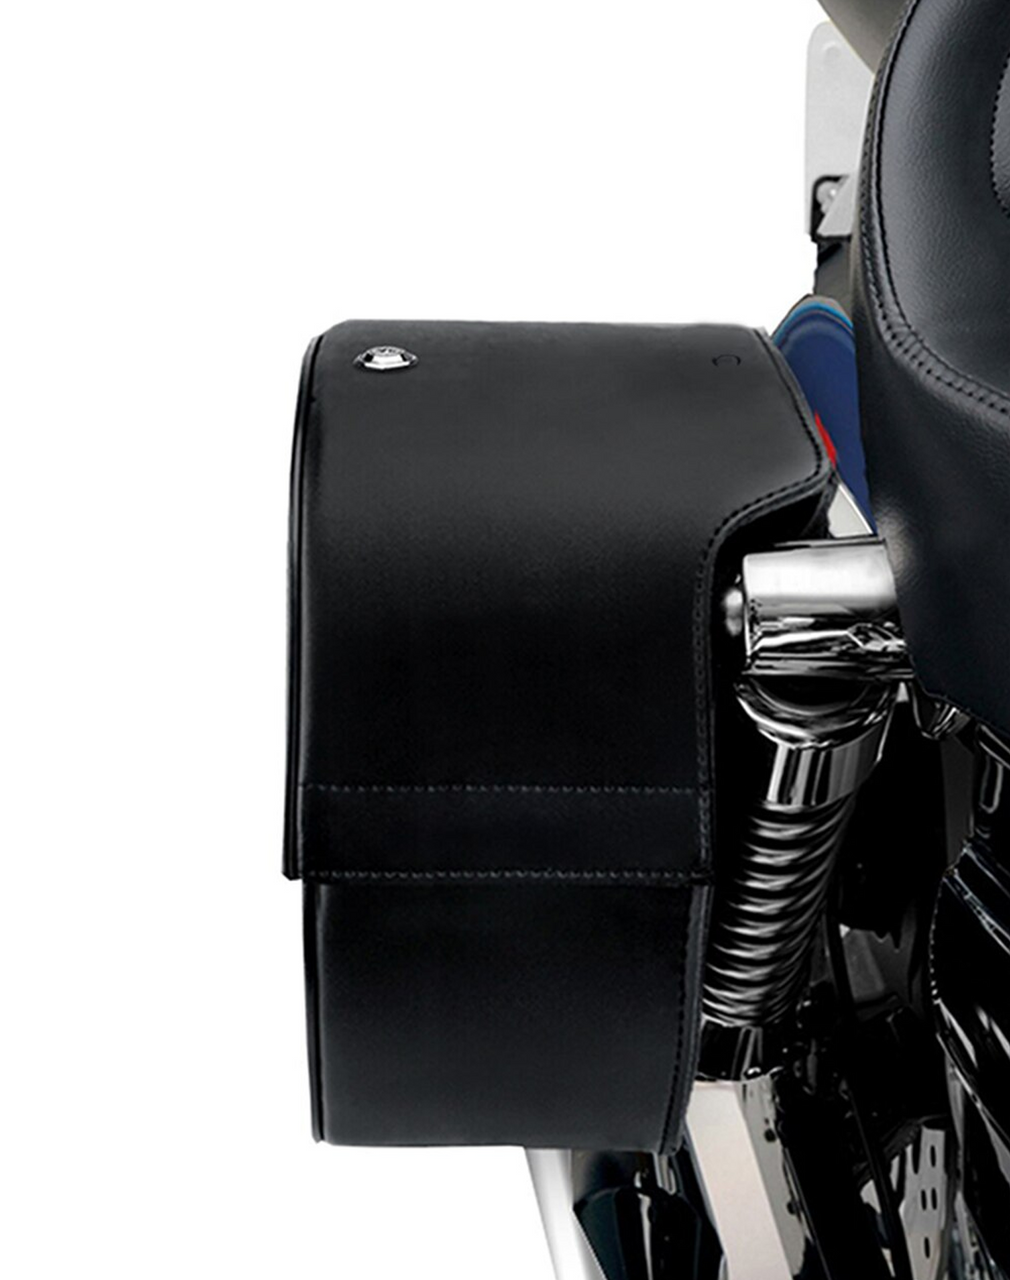 Viking Shock Cutout Single Strap Slanted Large Motorcycle Saddlebags For Harley Dyna Low Rider FXDL Shock Cutout View